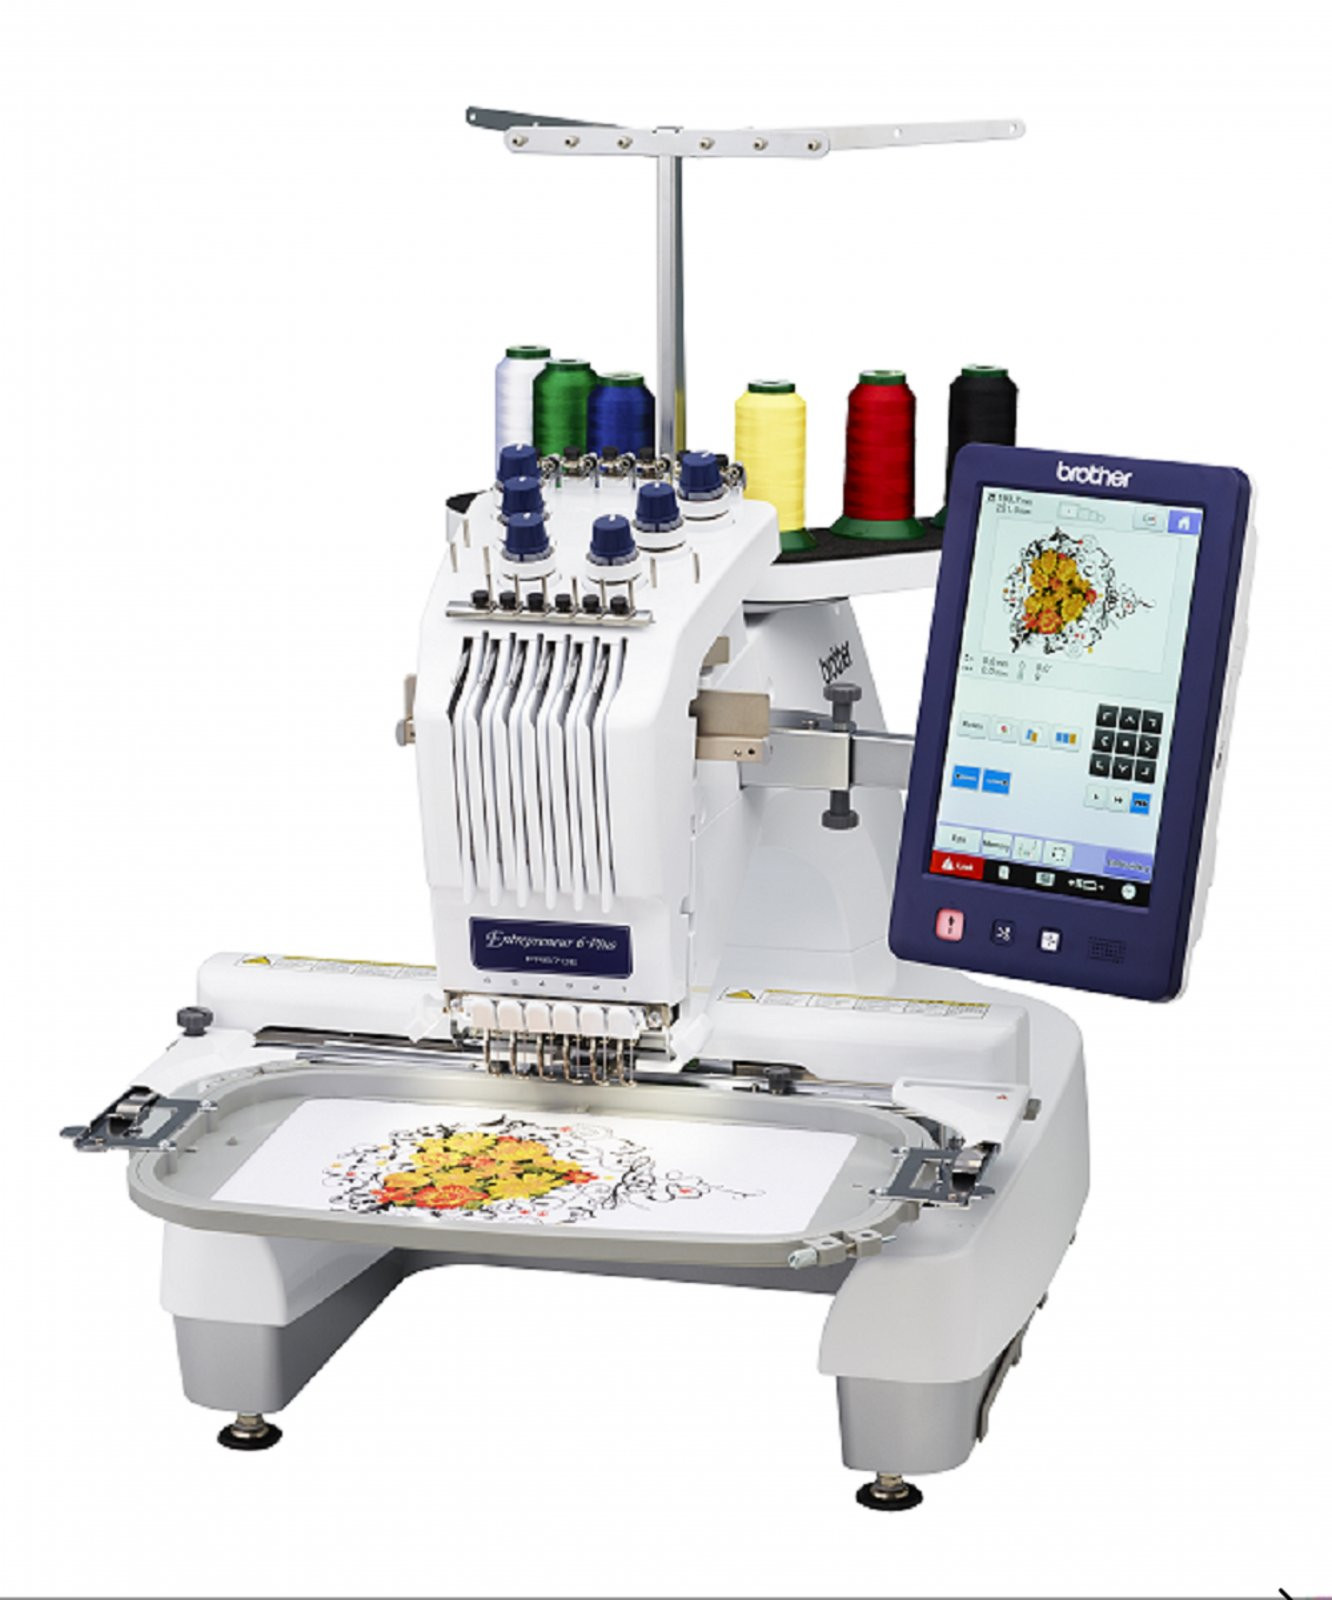 Awesome New Pr670e Six Needle Embroidery Machine 670 Embroidery Only Machines Of Perfect 49 Pics Embroidery Only Machines